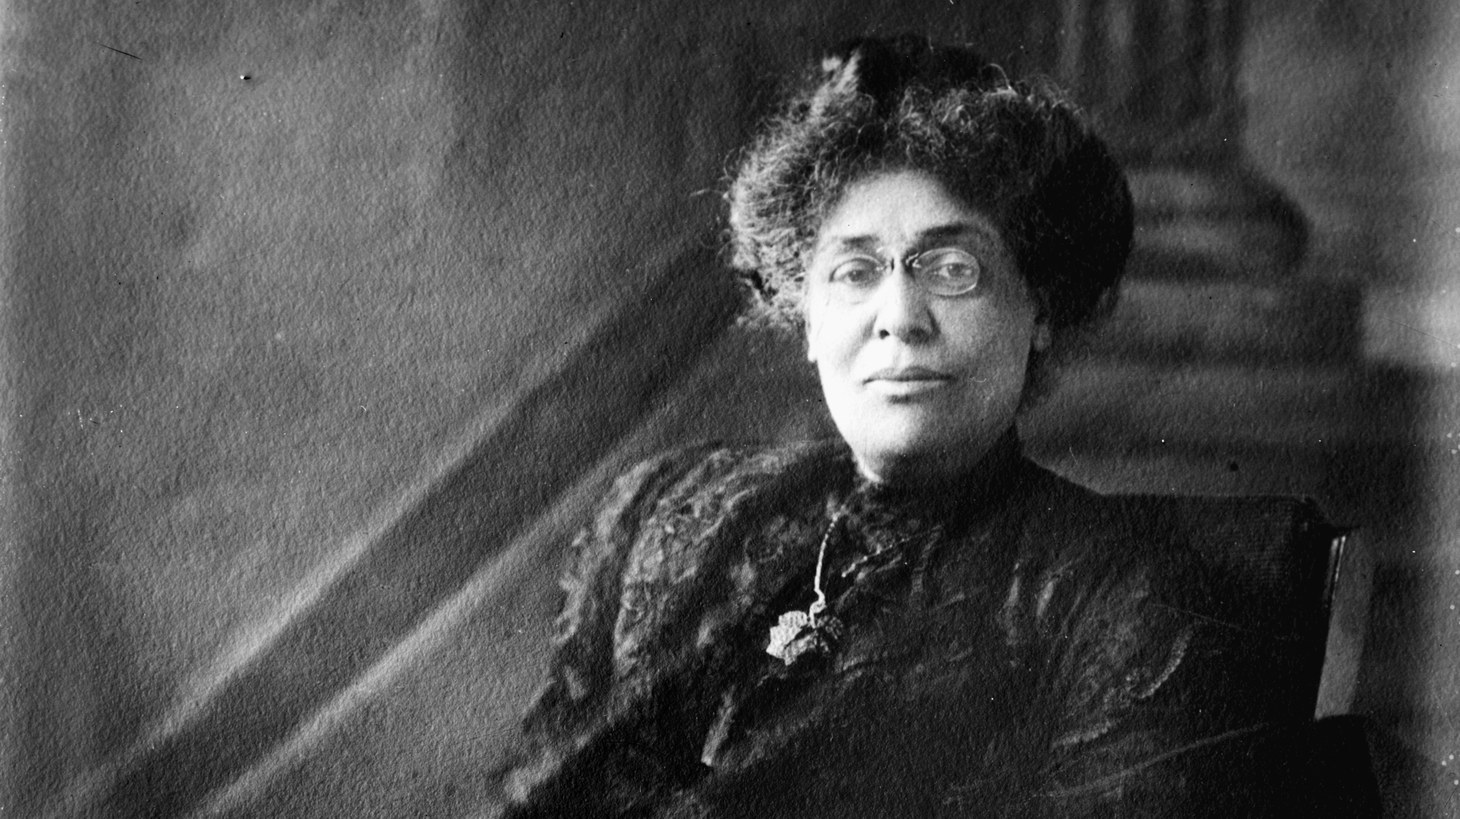 Born in Mississippi during the Civil War, Margaret Murray Washington went from washerwoman's daughter to college dean and advanced ideas of domestic work in the Black household.